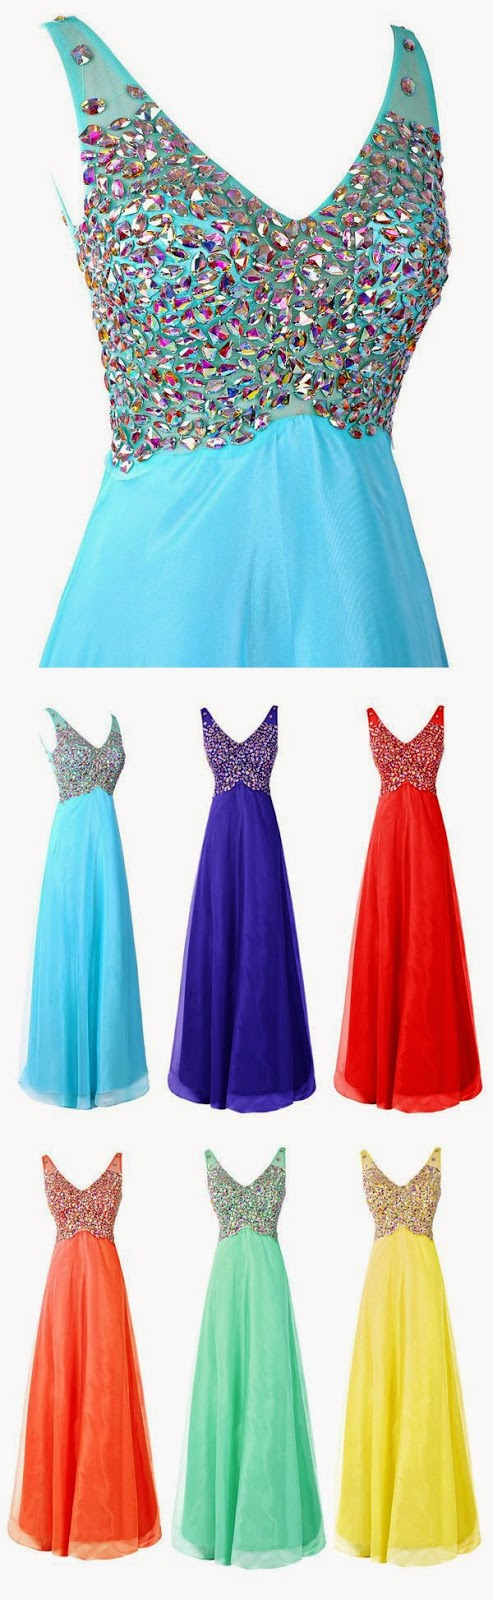 Mix Color A-line V Neck Chiffon Long Prom Dress With Rhinestone #prom #evening #party #dress